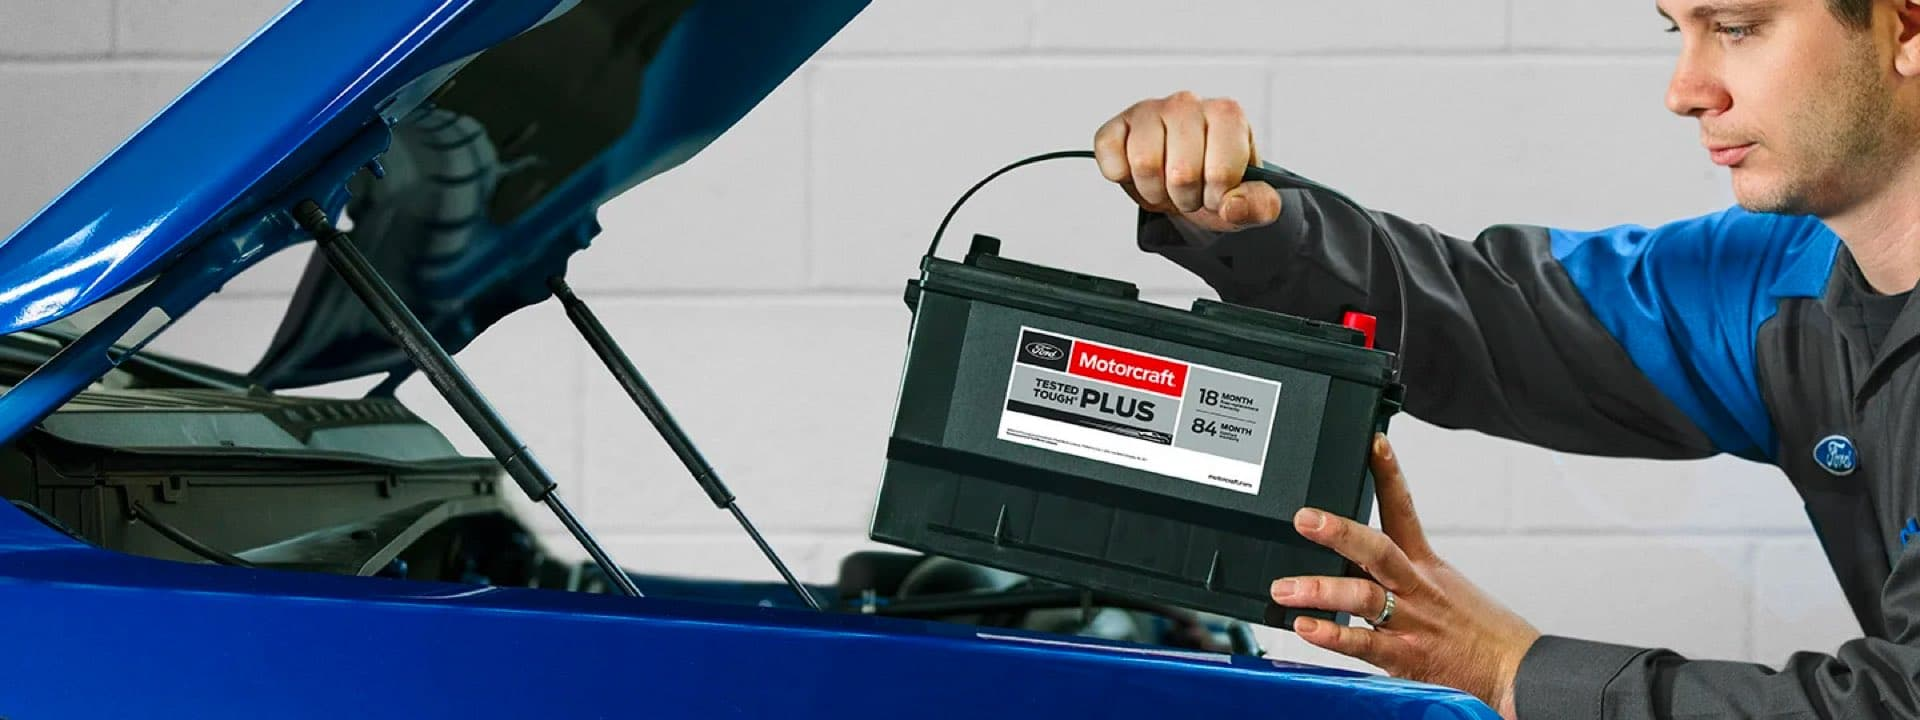 Technician placing new battery in car